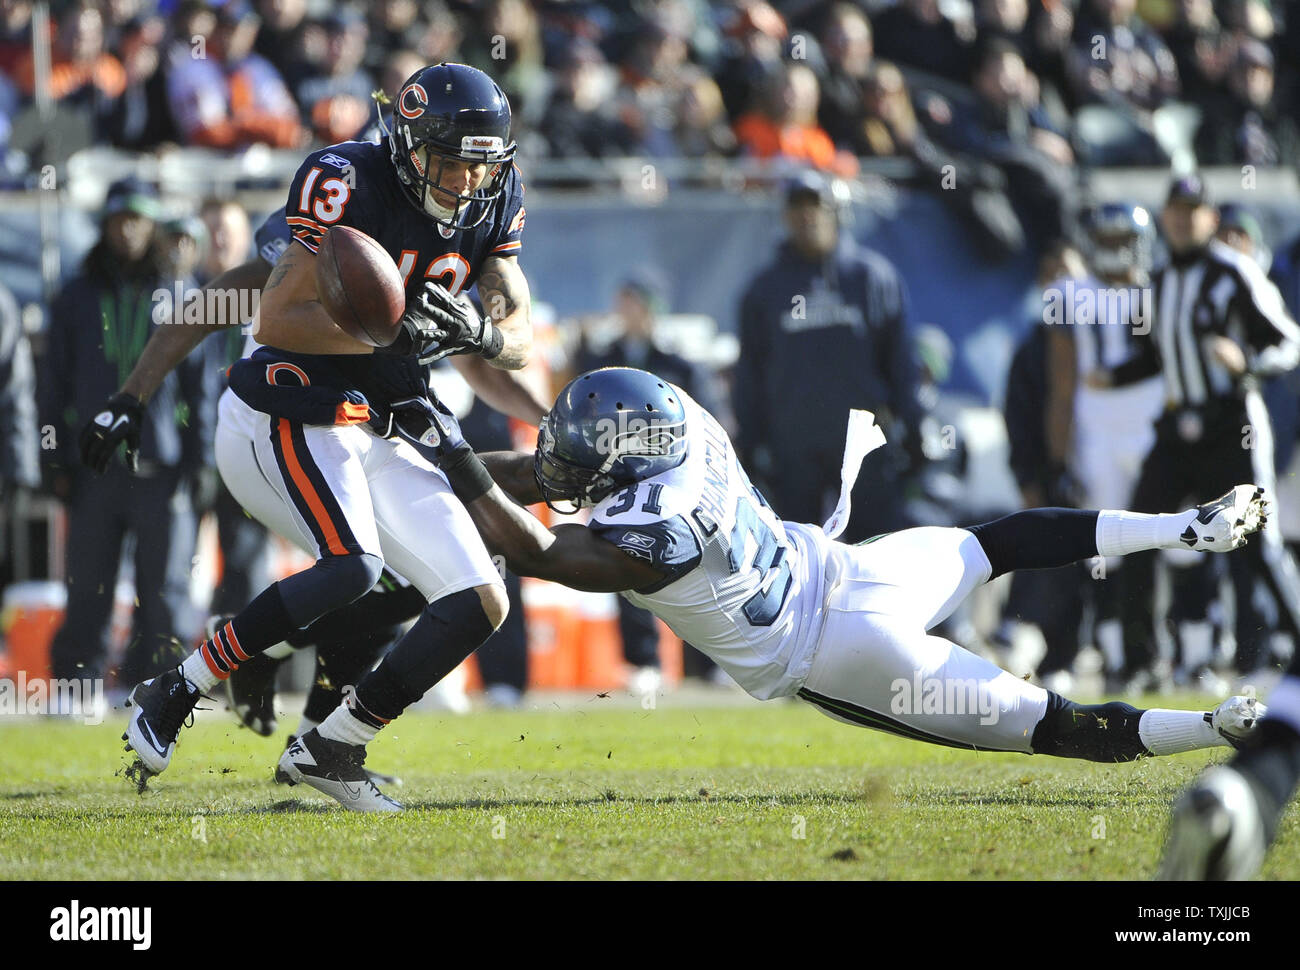 b65ebba27 Seattle Seahawks strong safety Kam Chancellor (R) strips the ball from  Chicago Bears wide